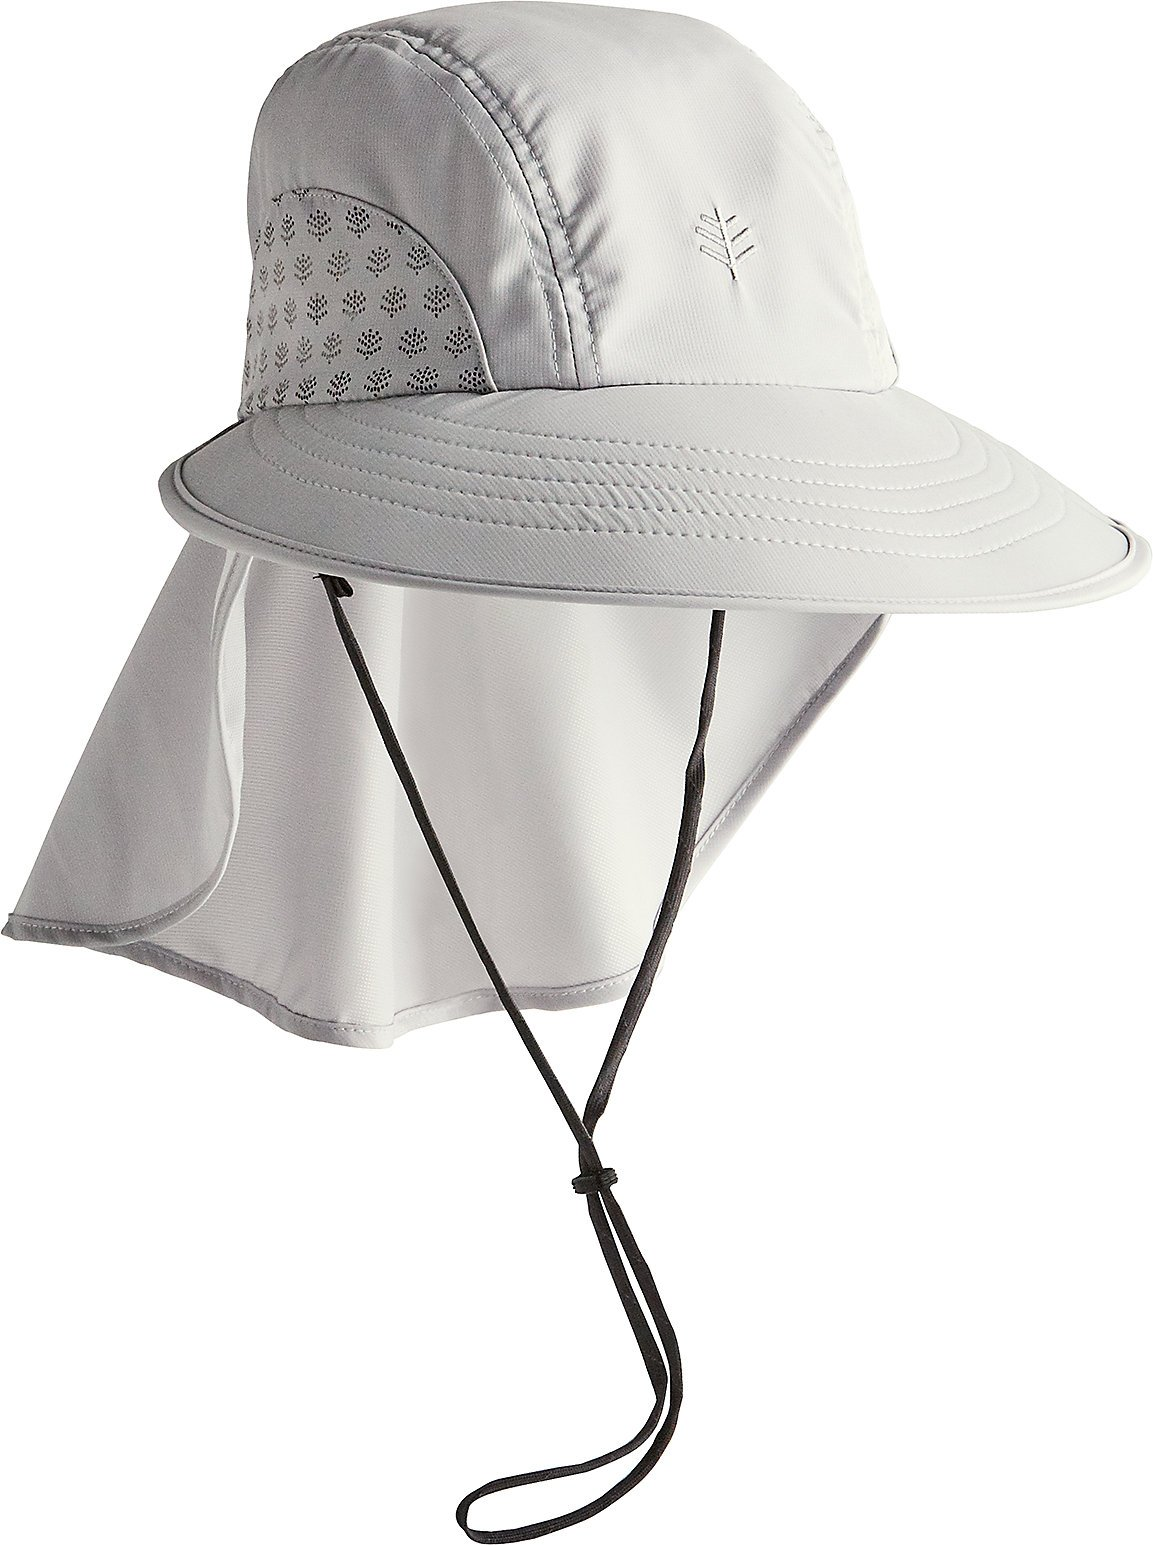 Coolibar UPF 50+ Women's Men's Explorer Hat - Sun Protective (Large/X-Large- Light Grey) by Coolibar (Image #2)